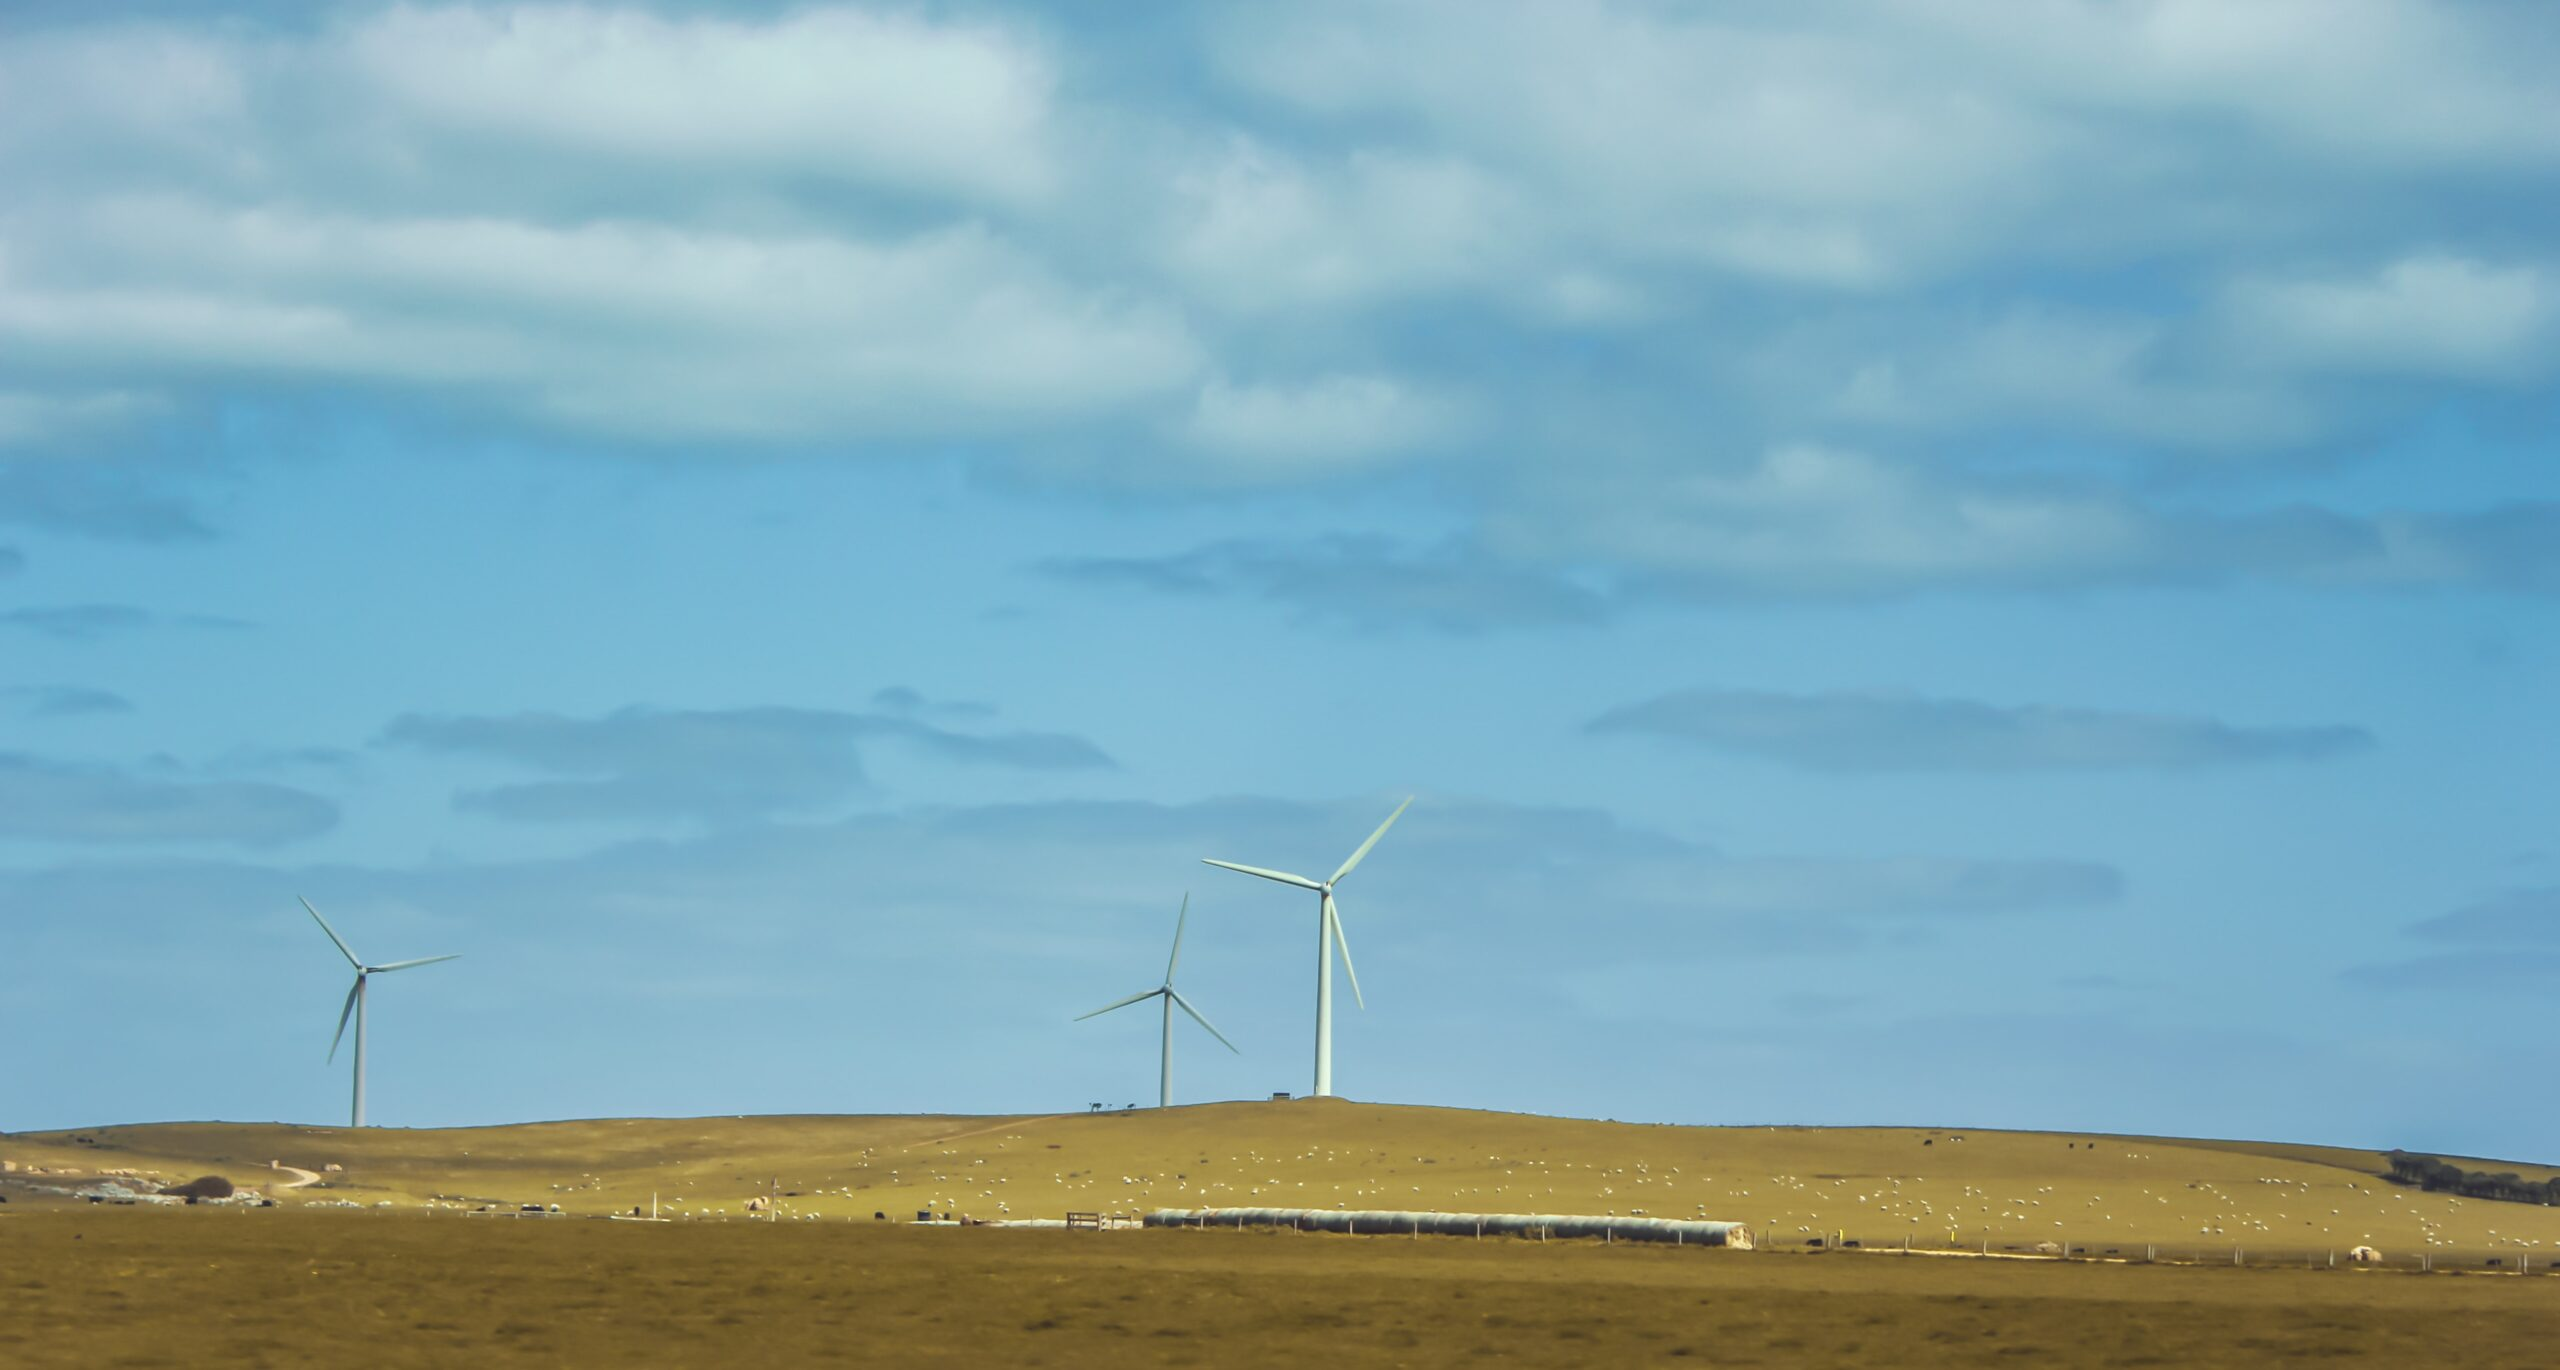 ESG Investing: What is it and how do I know if it's a good choice for me?